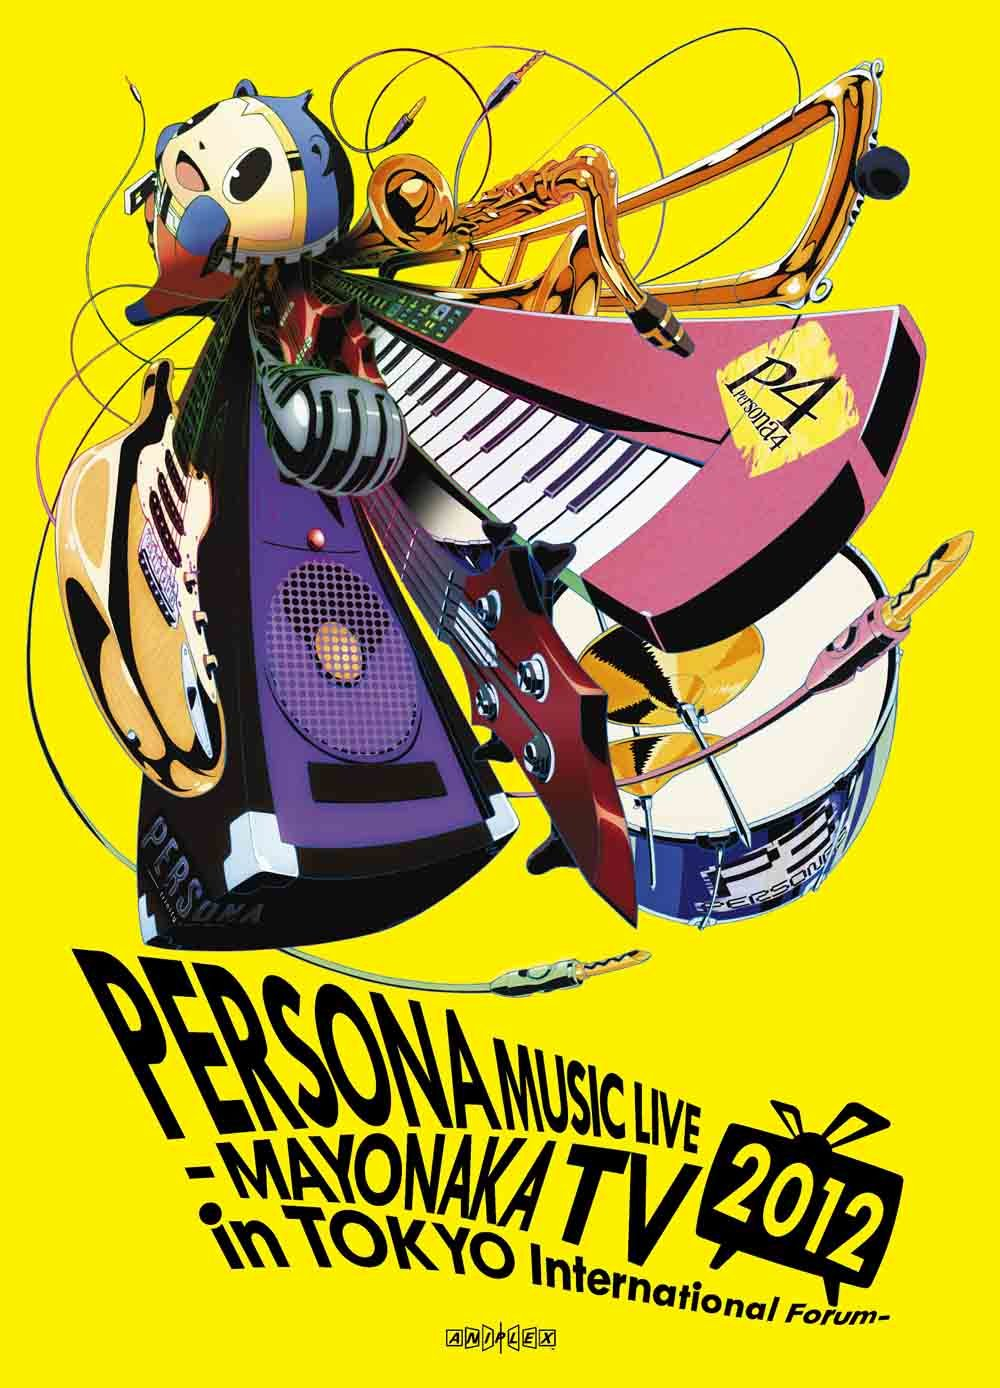 V.A. - Persona Music Live 2012 Mayonaka TV In Tokyo International Forum (BD+CD) [Japan LTD BD] ANZX-3185 by